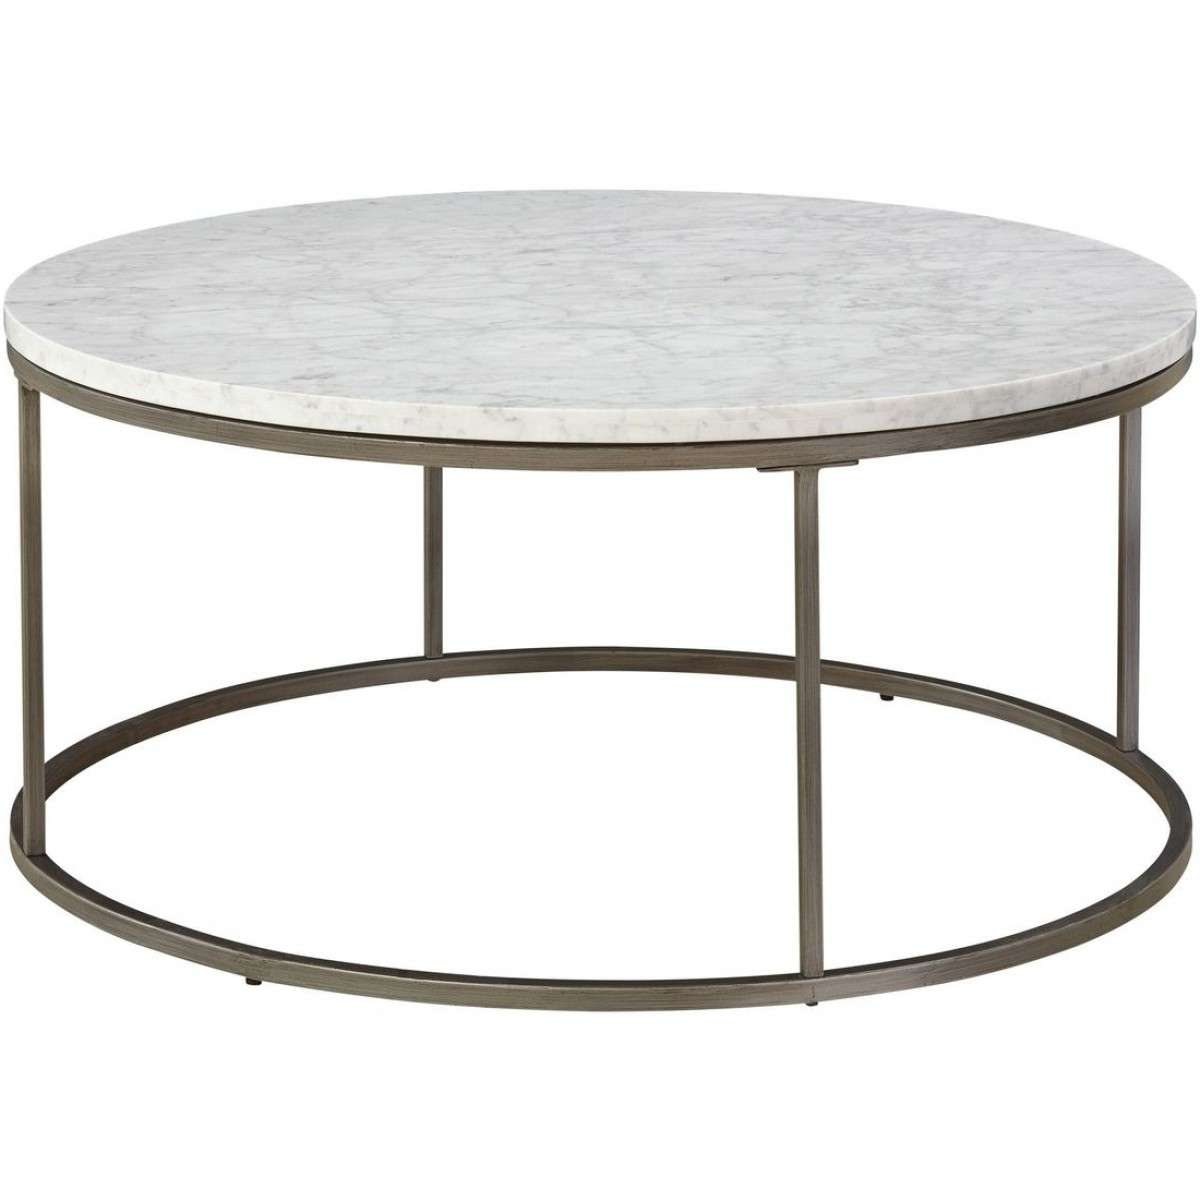 Widely Used Marble Round Coffee Tables Within Alana Round Coffee Table With White Marble Top (View 20 of 20)